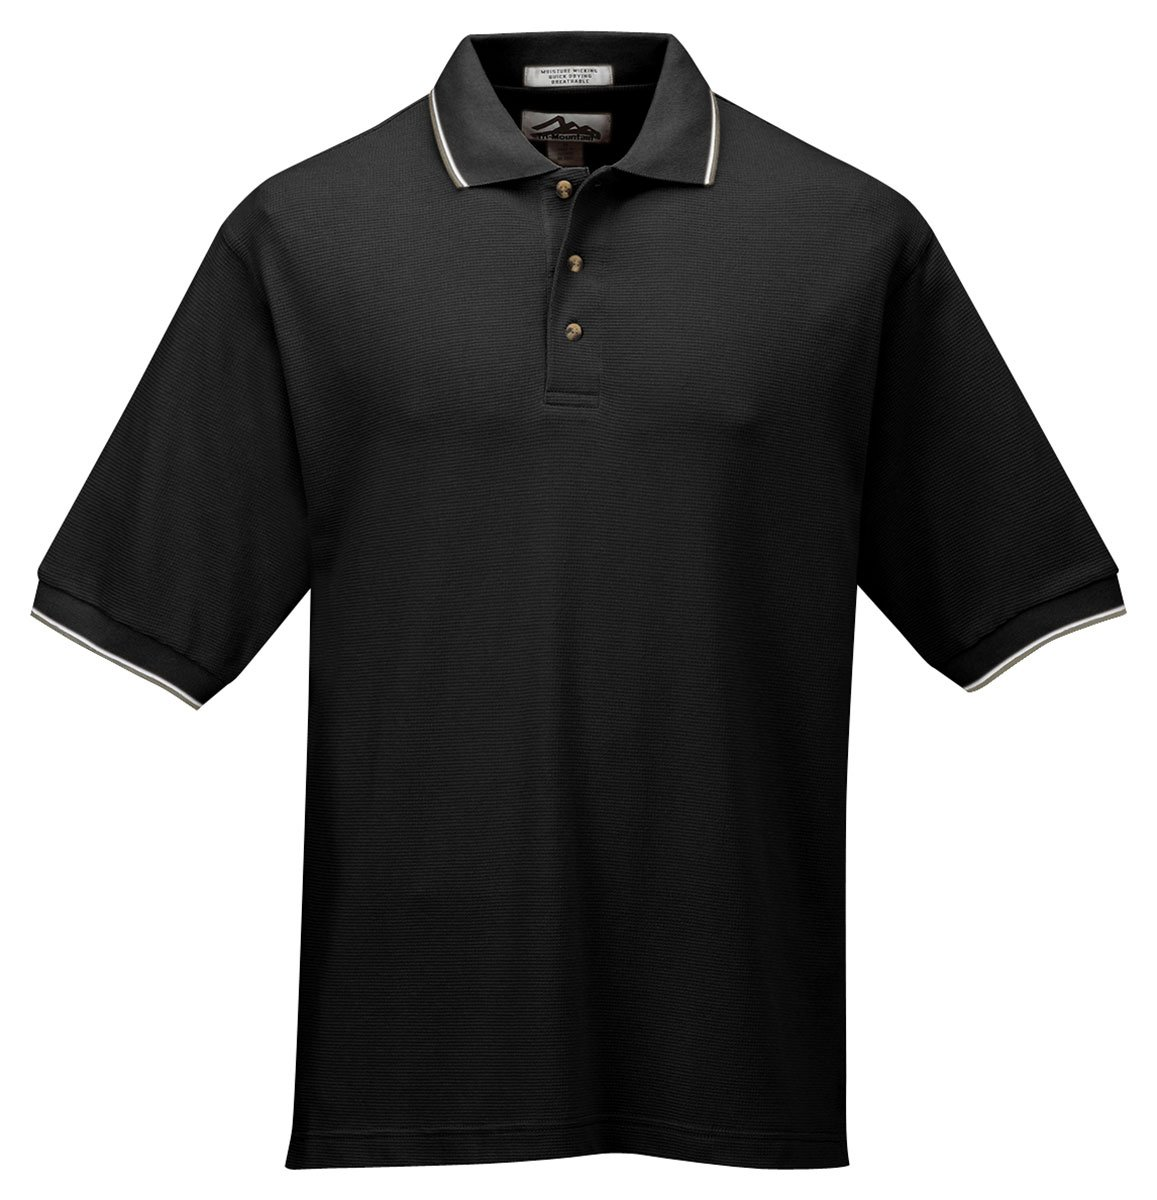 Mesh Knit Two Tone Collar Tri Mountain Golf Shirt